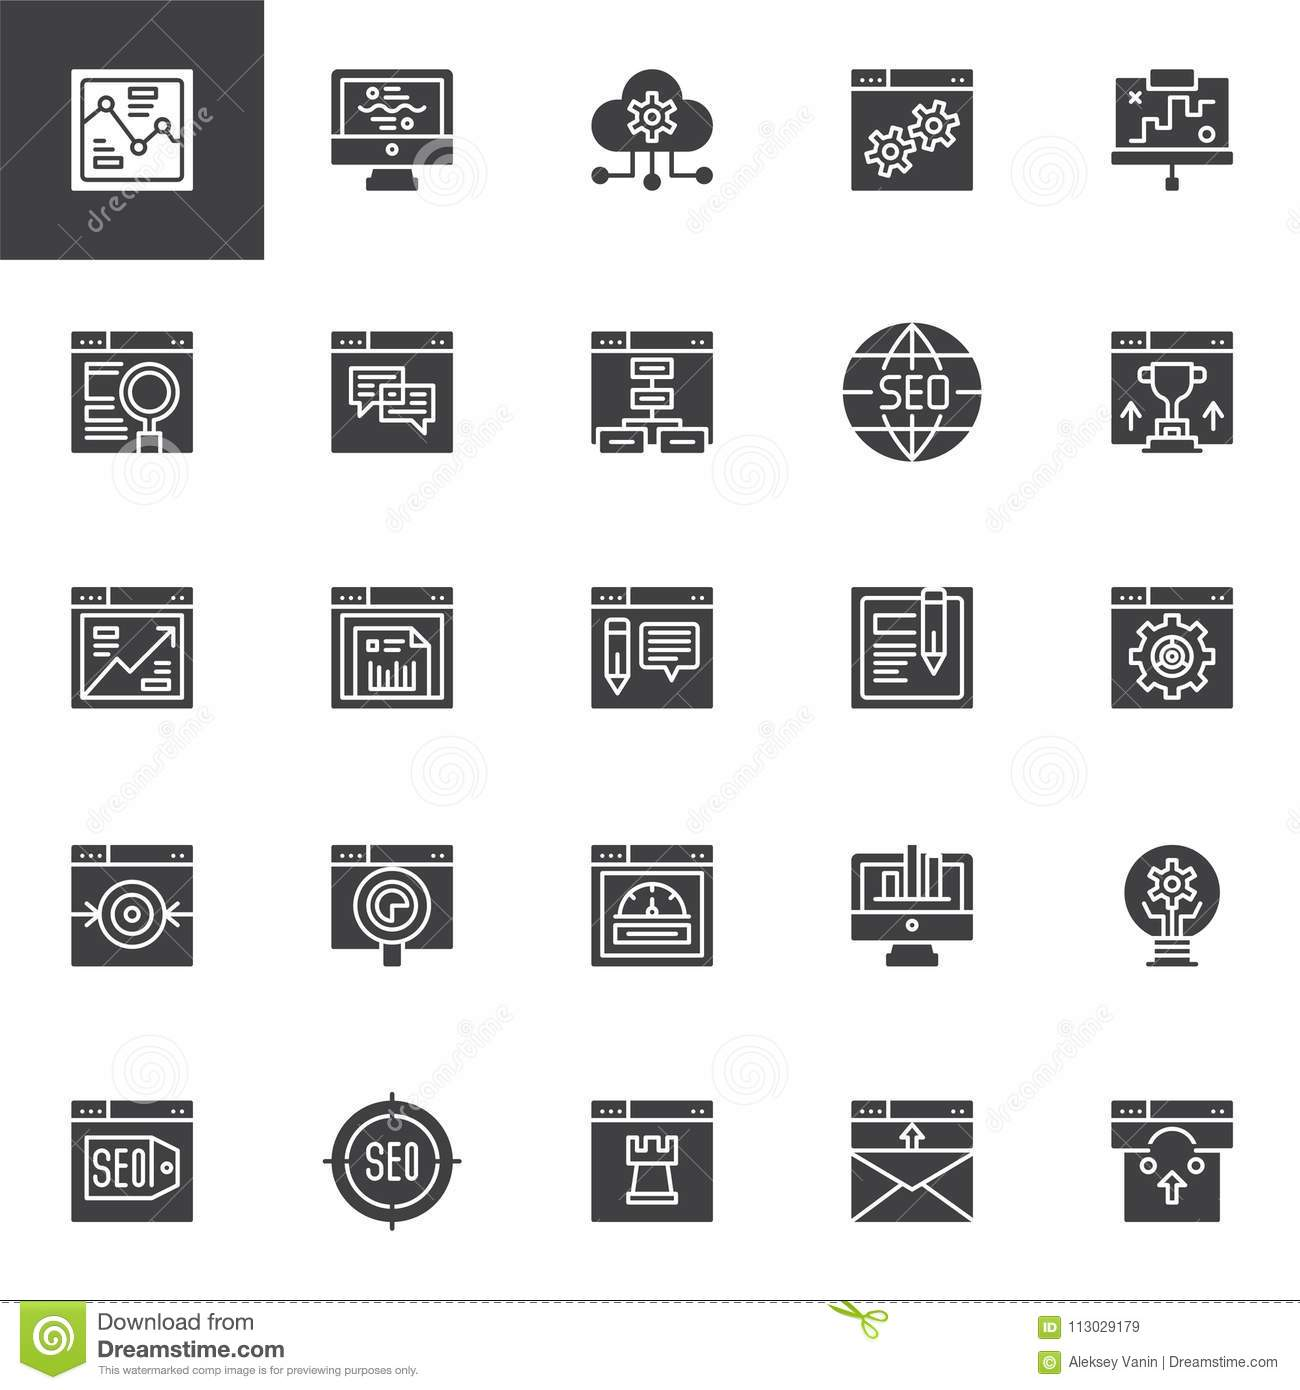 SEO and online marketing vector icons set